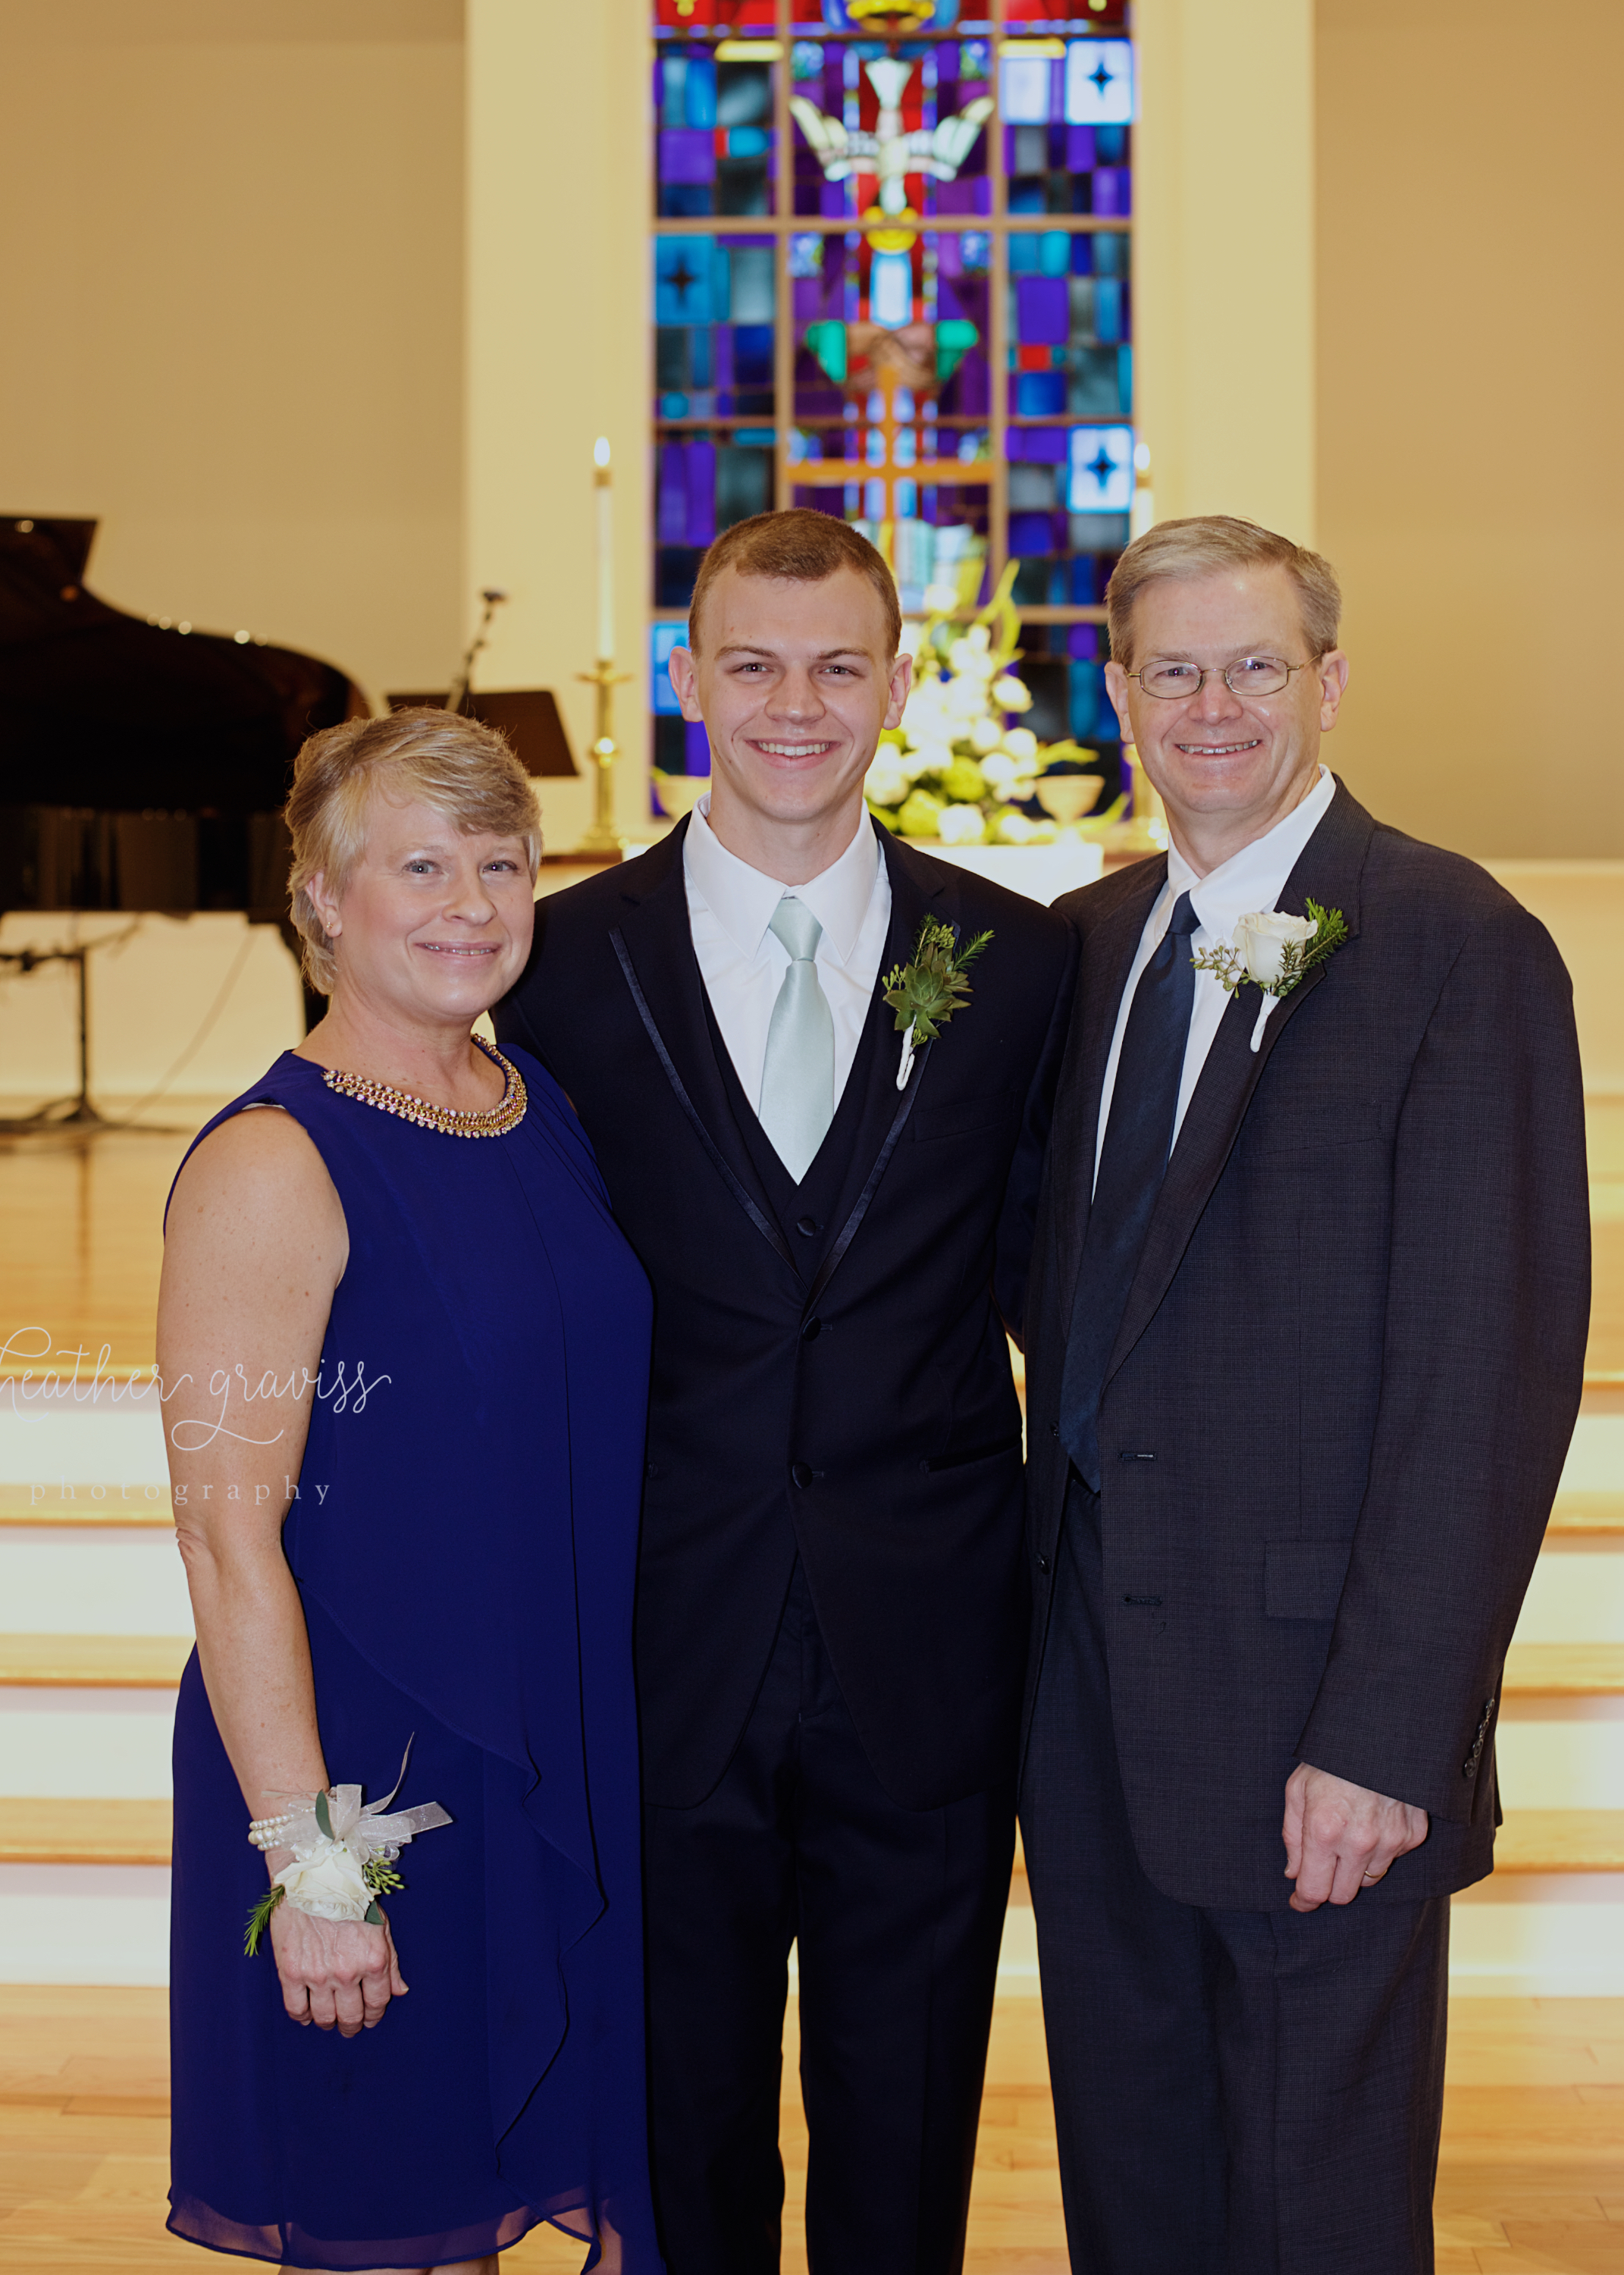 nashville middle tn wedding 056.jpg